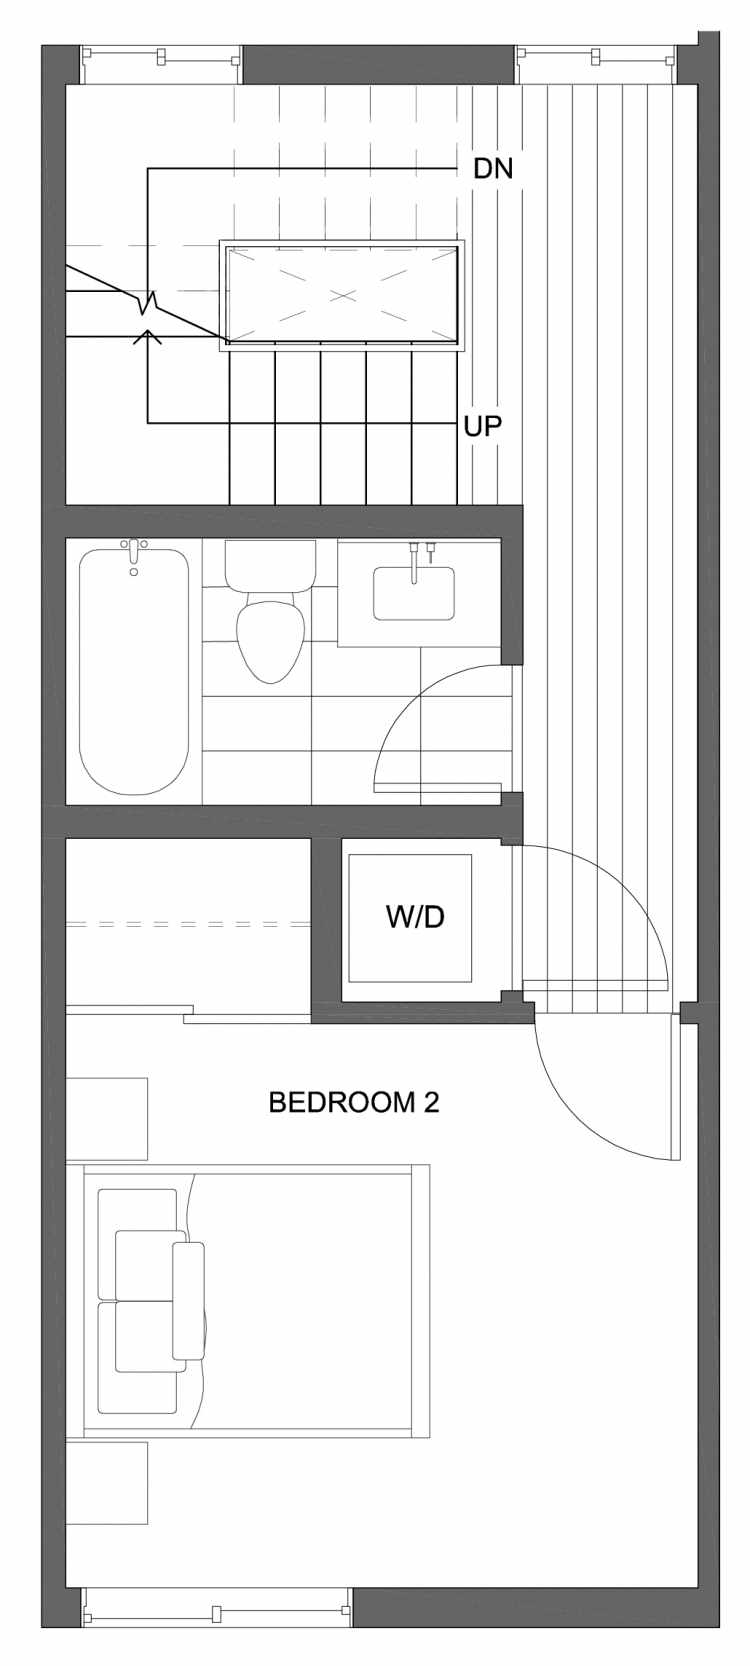 Second Floor Plan of 10429D Alderbrook Pl NW, One of the Jasmine Townhomes in the Greenwood Neighborhood of Seattle